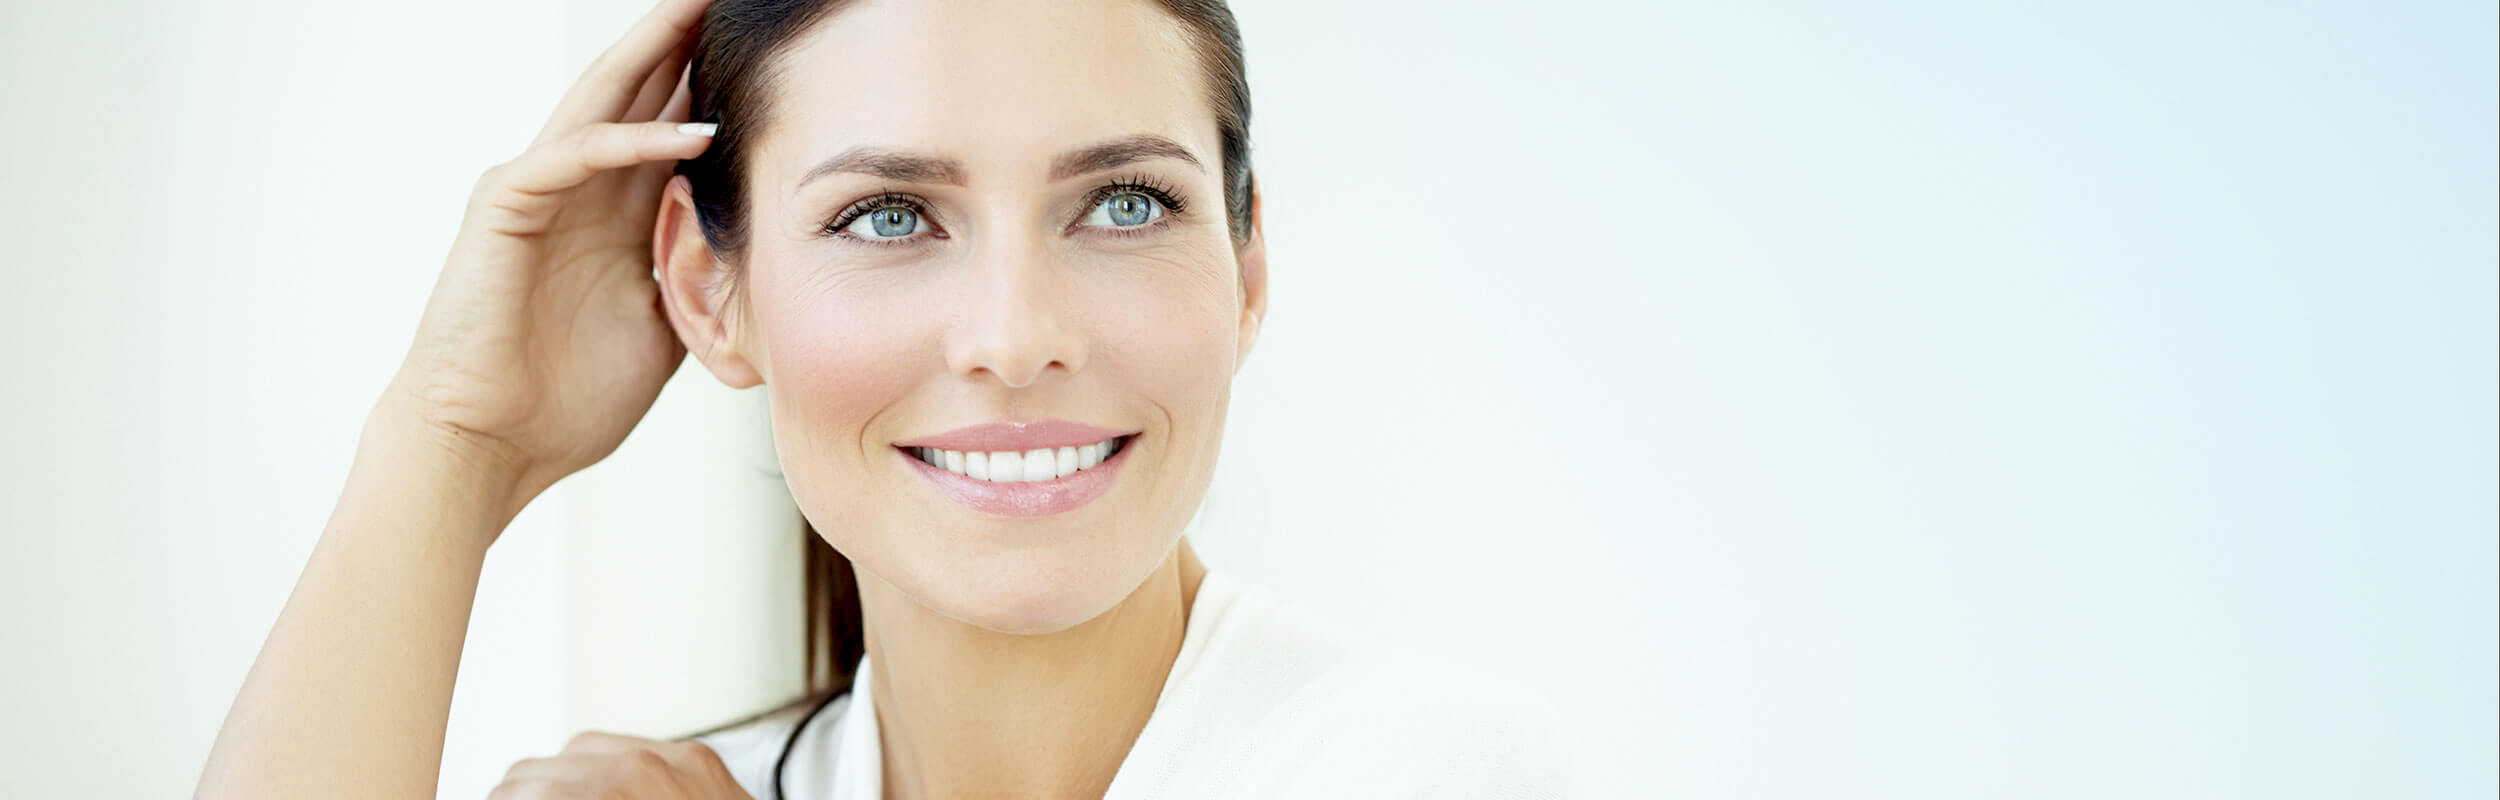 Aura Chemical Peels Services in Kingston and Wimbledon